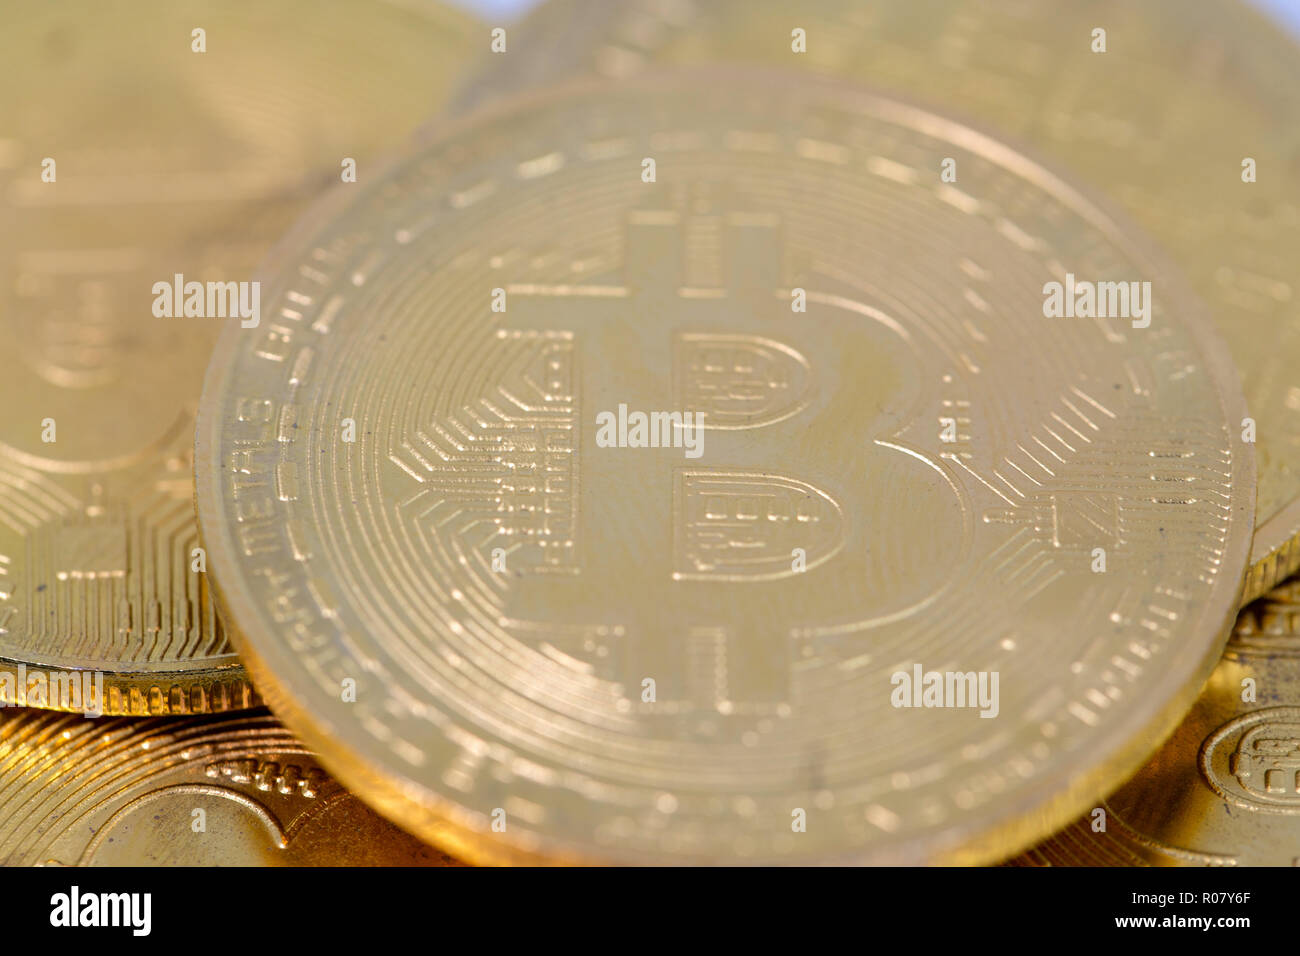 Close up Bitcoin tokens stacked, flat lay view. Cryptocurrency concept with copy space. Stock Photo